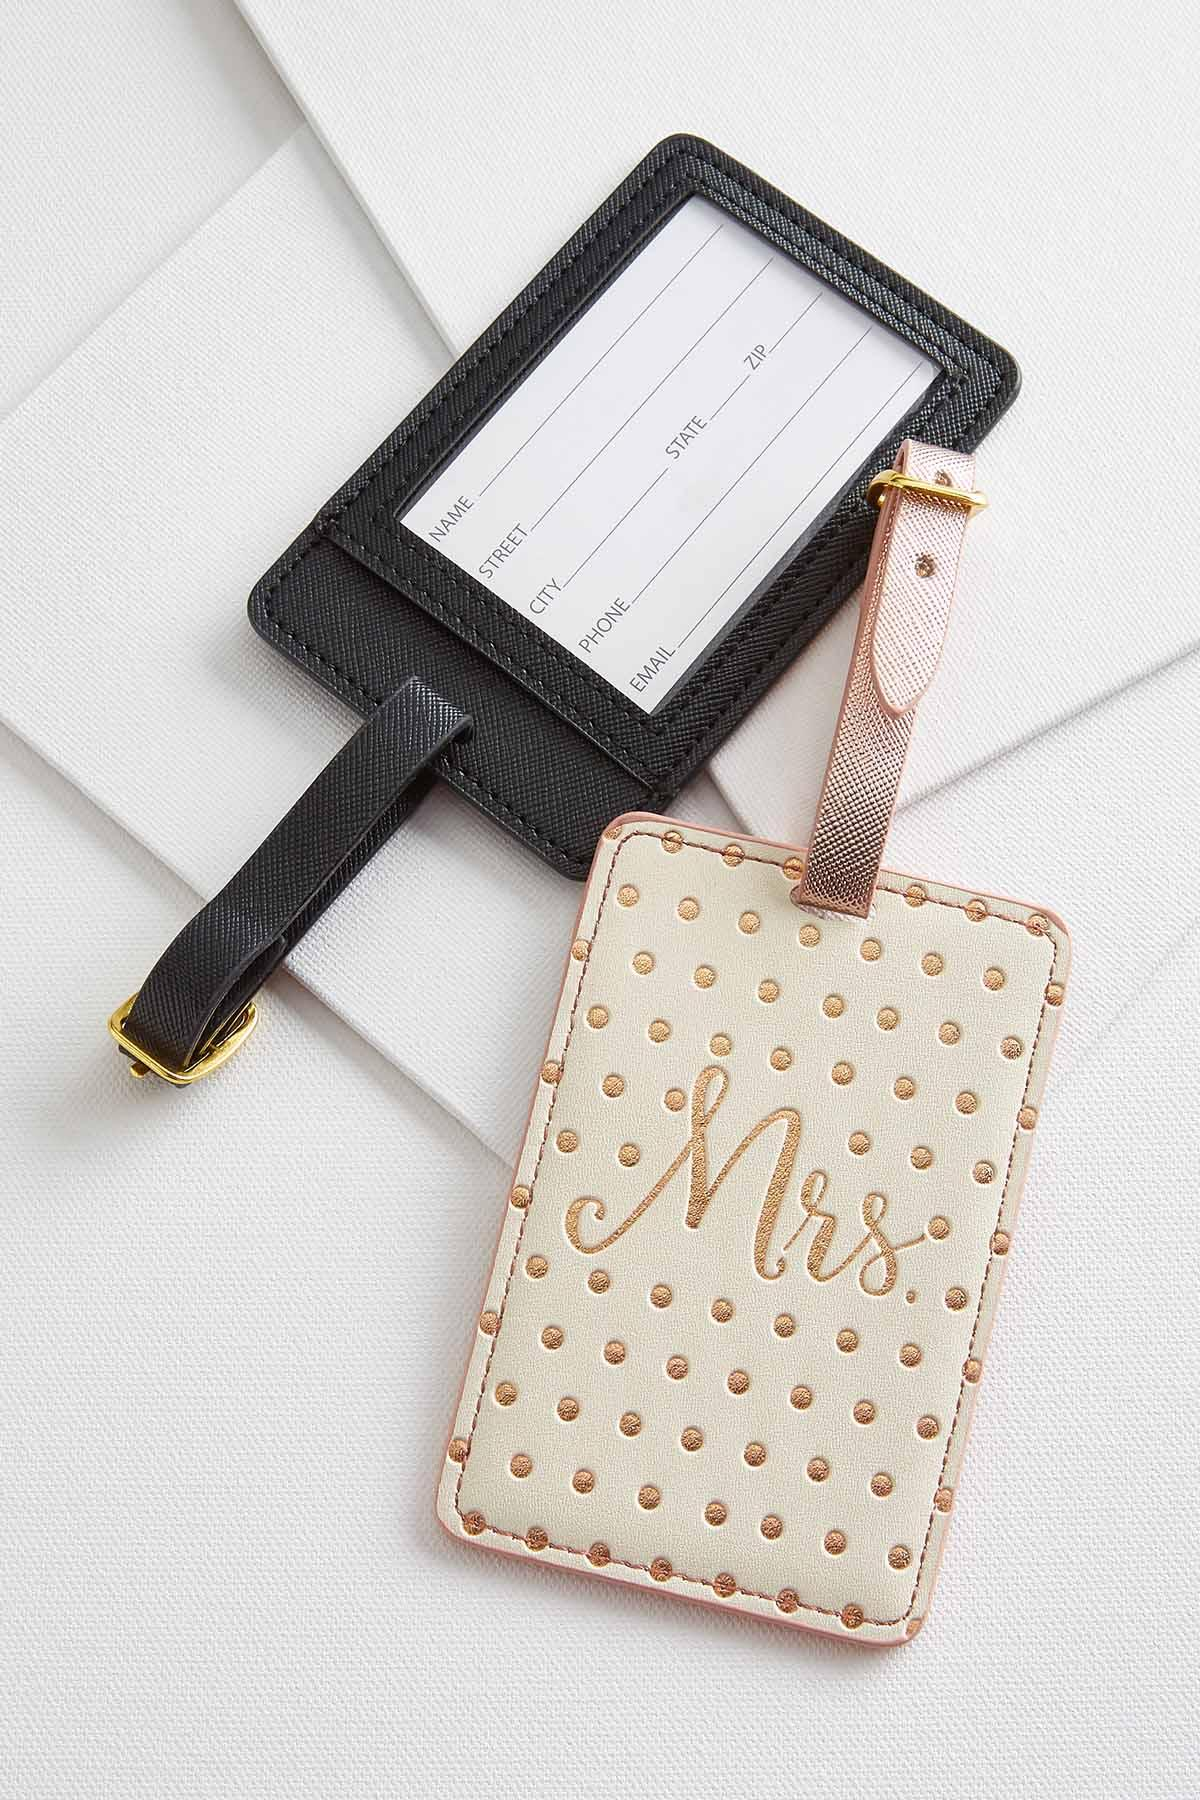 Mr.And Mrs.Luggage Tags